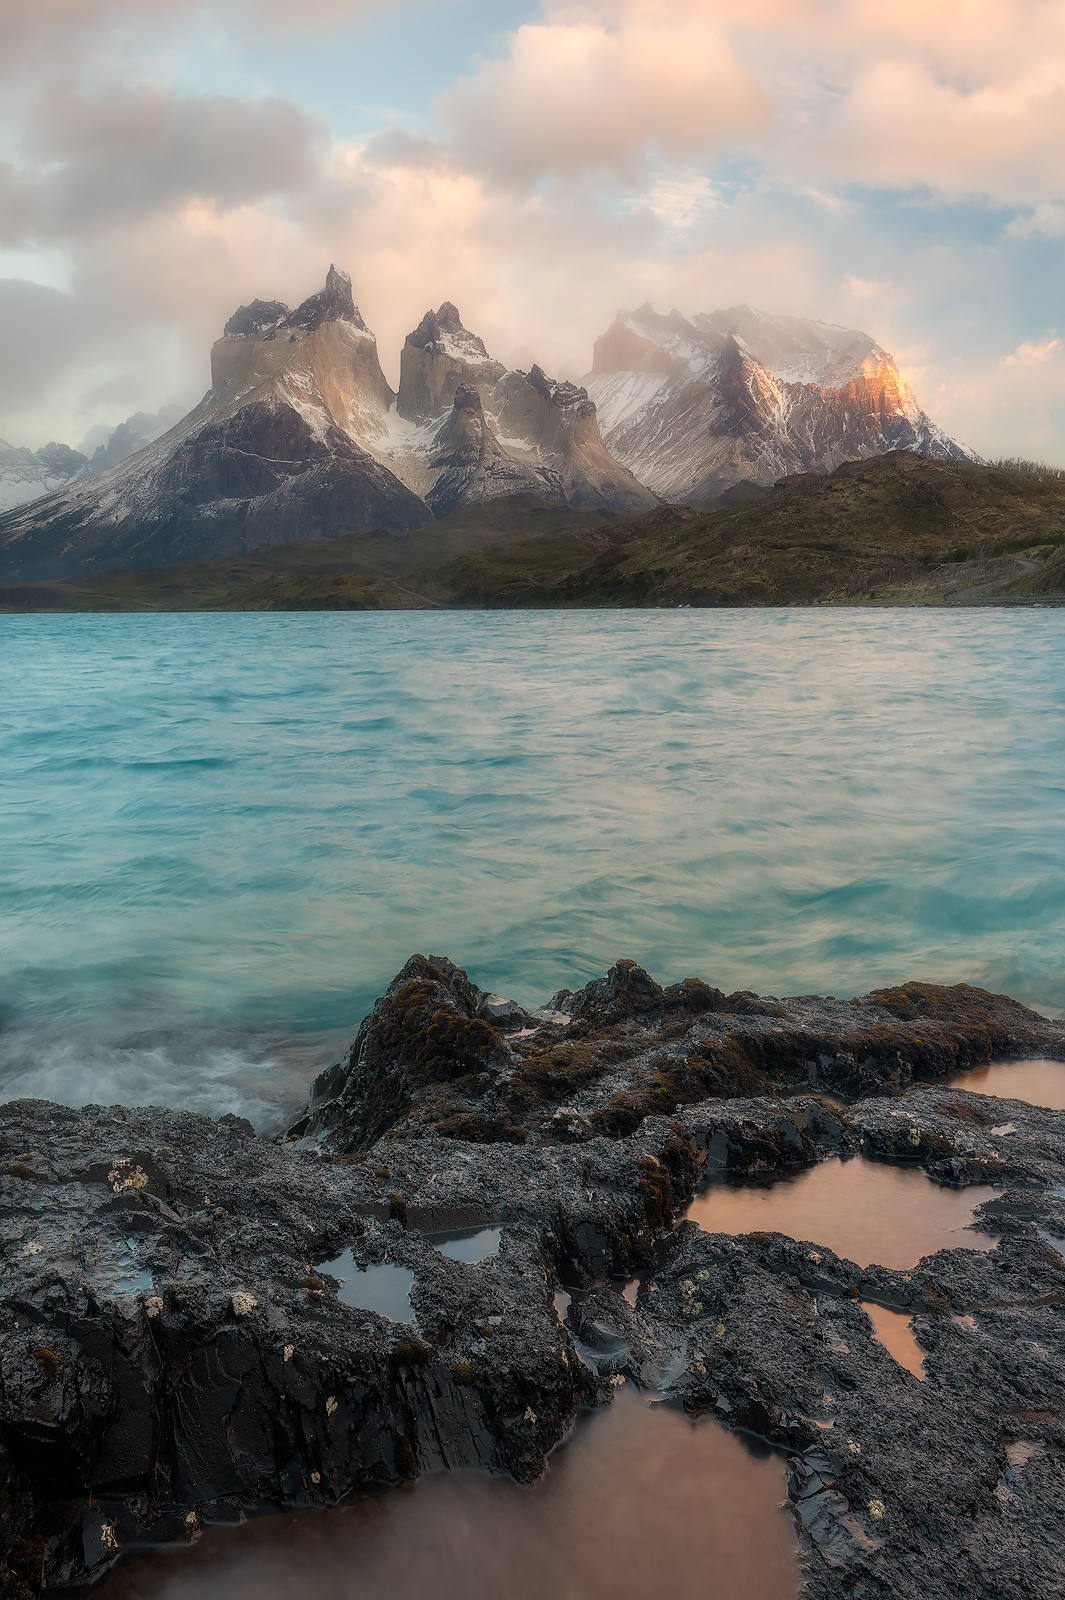 andes mountains,beautiful,cerro paine grande,chile,hosteria pehoe,lago pehoé,lake,landscape,los cuernos,morning,mountain,mountain range,patagonia,peak,snow,south america,sunrise,torres del paine natio, photo